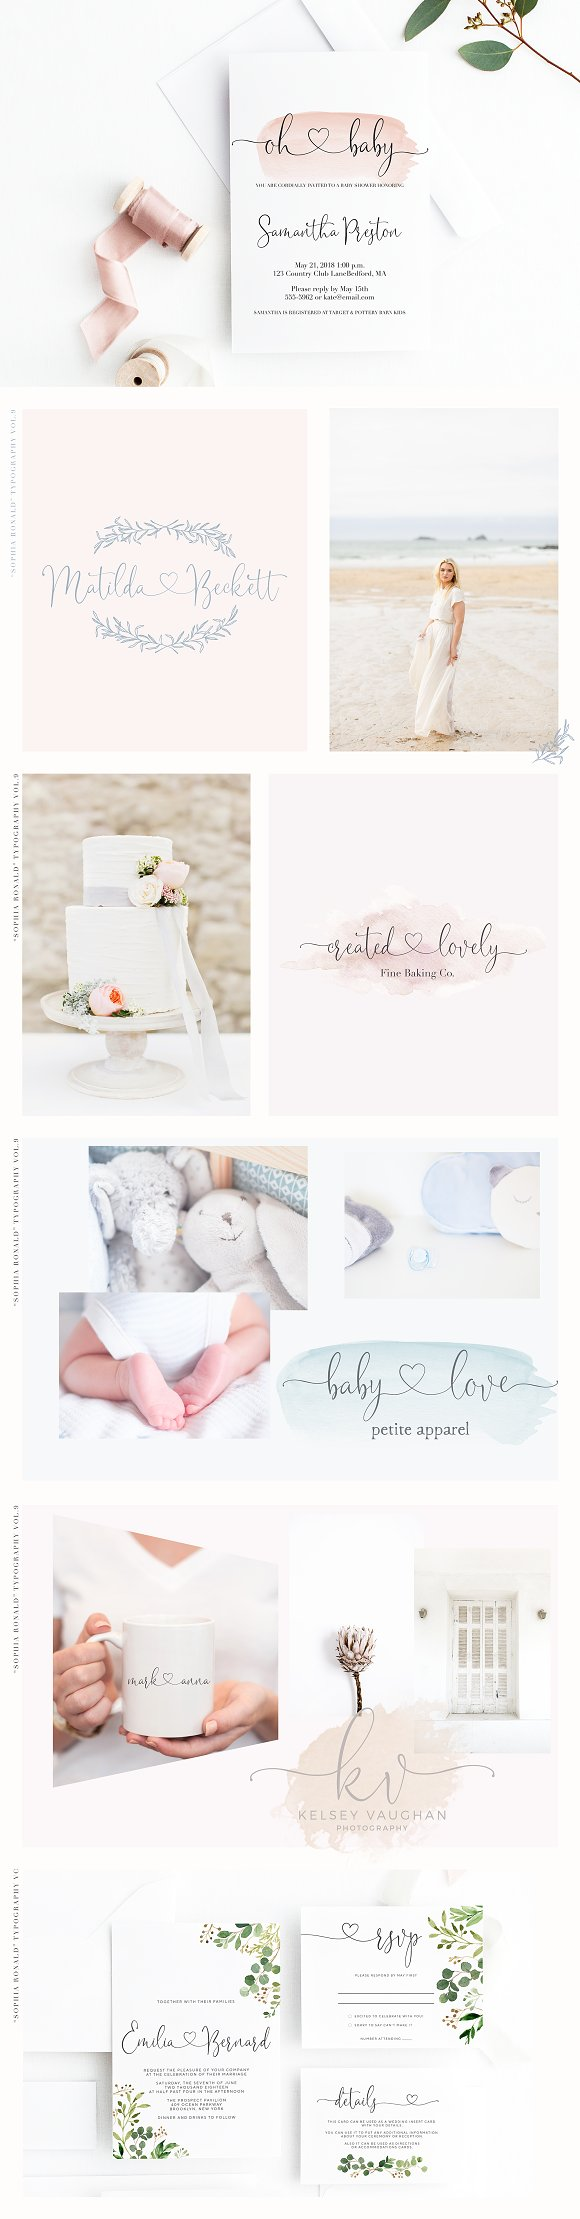 Sophia Ronald // Lovely Script Font in Script Fonts - product preview 2